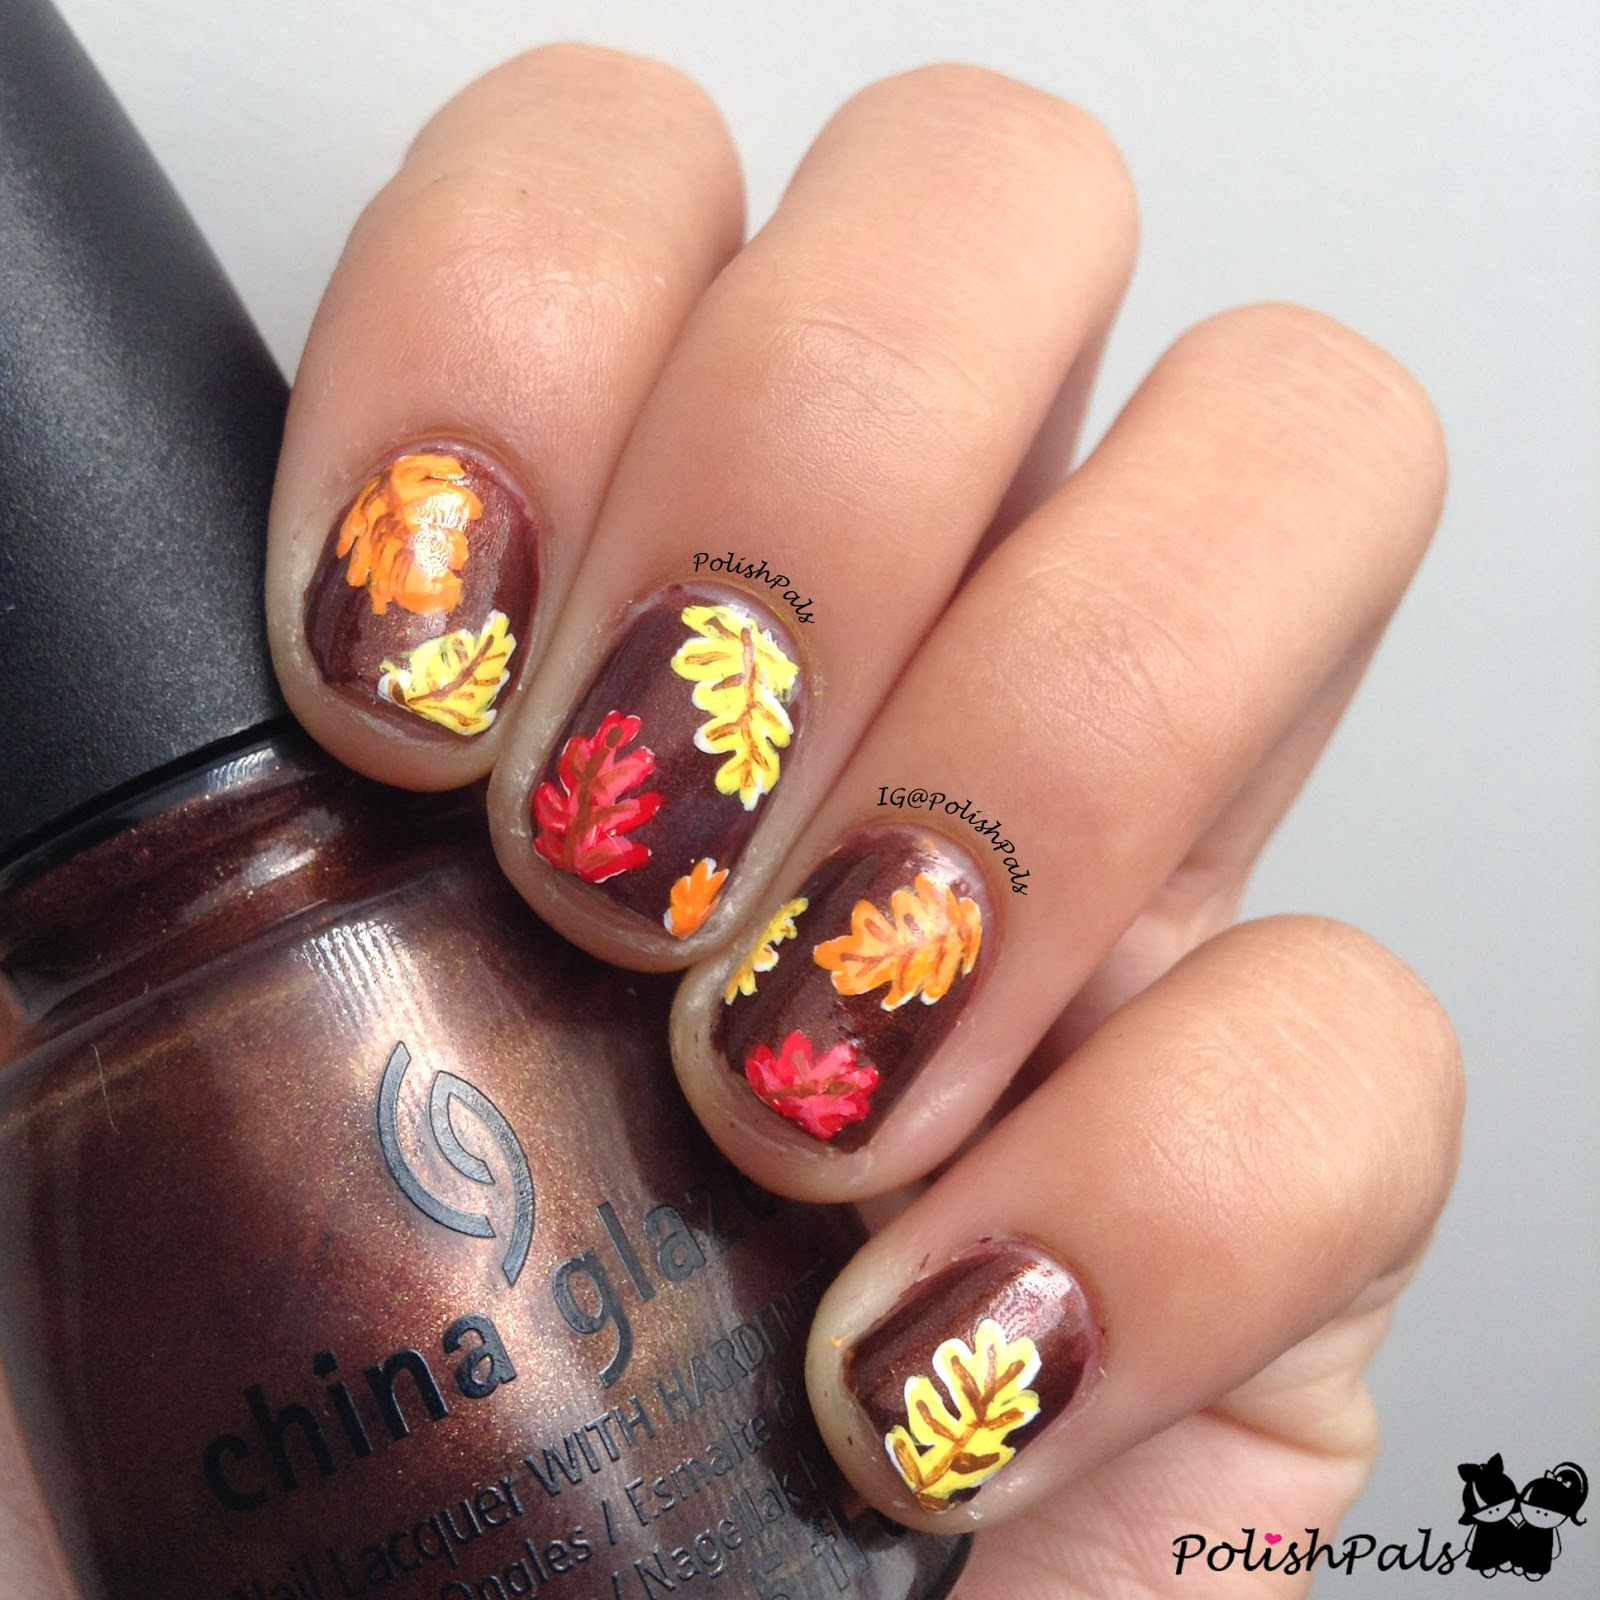 Last Autumn Nail Art Of The Year: Polish Pals: I'm Fine With Fall